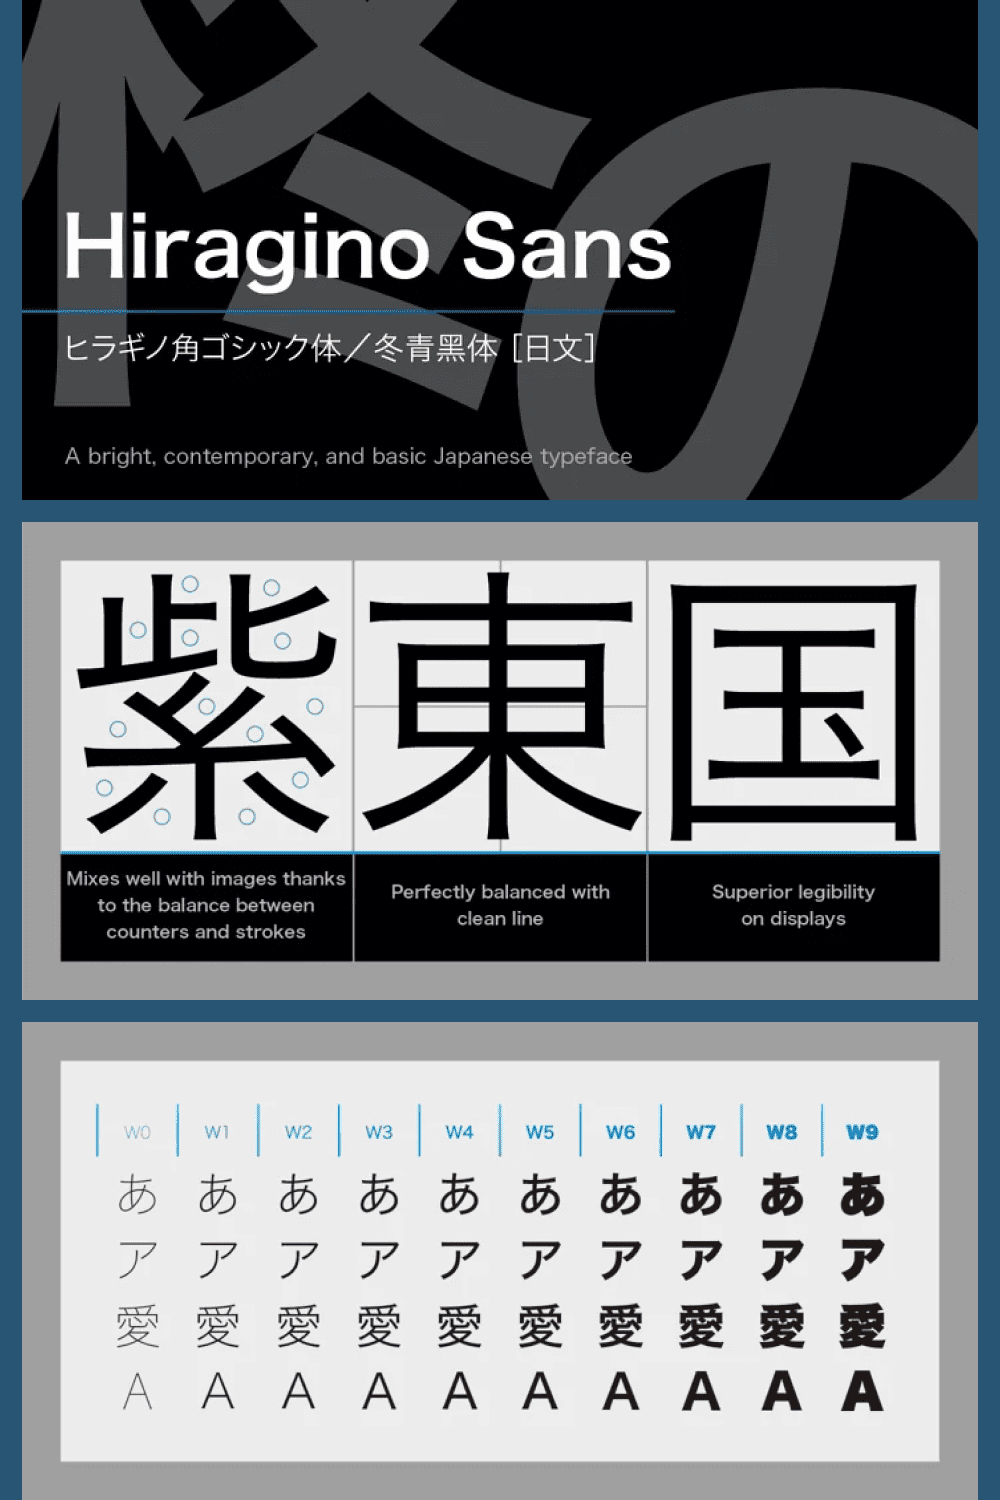 Mindful that Hiragino Sans (Kaku Gothic) would be used in conjunction with Hiragino Serif (Mincho), SCREEN developed a font that anticipated today's world where most people do their reading on displays and yet still has an orthodox letterform that does not blur when printed on paper.